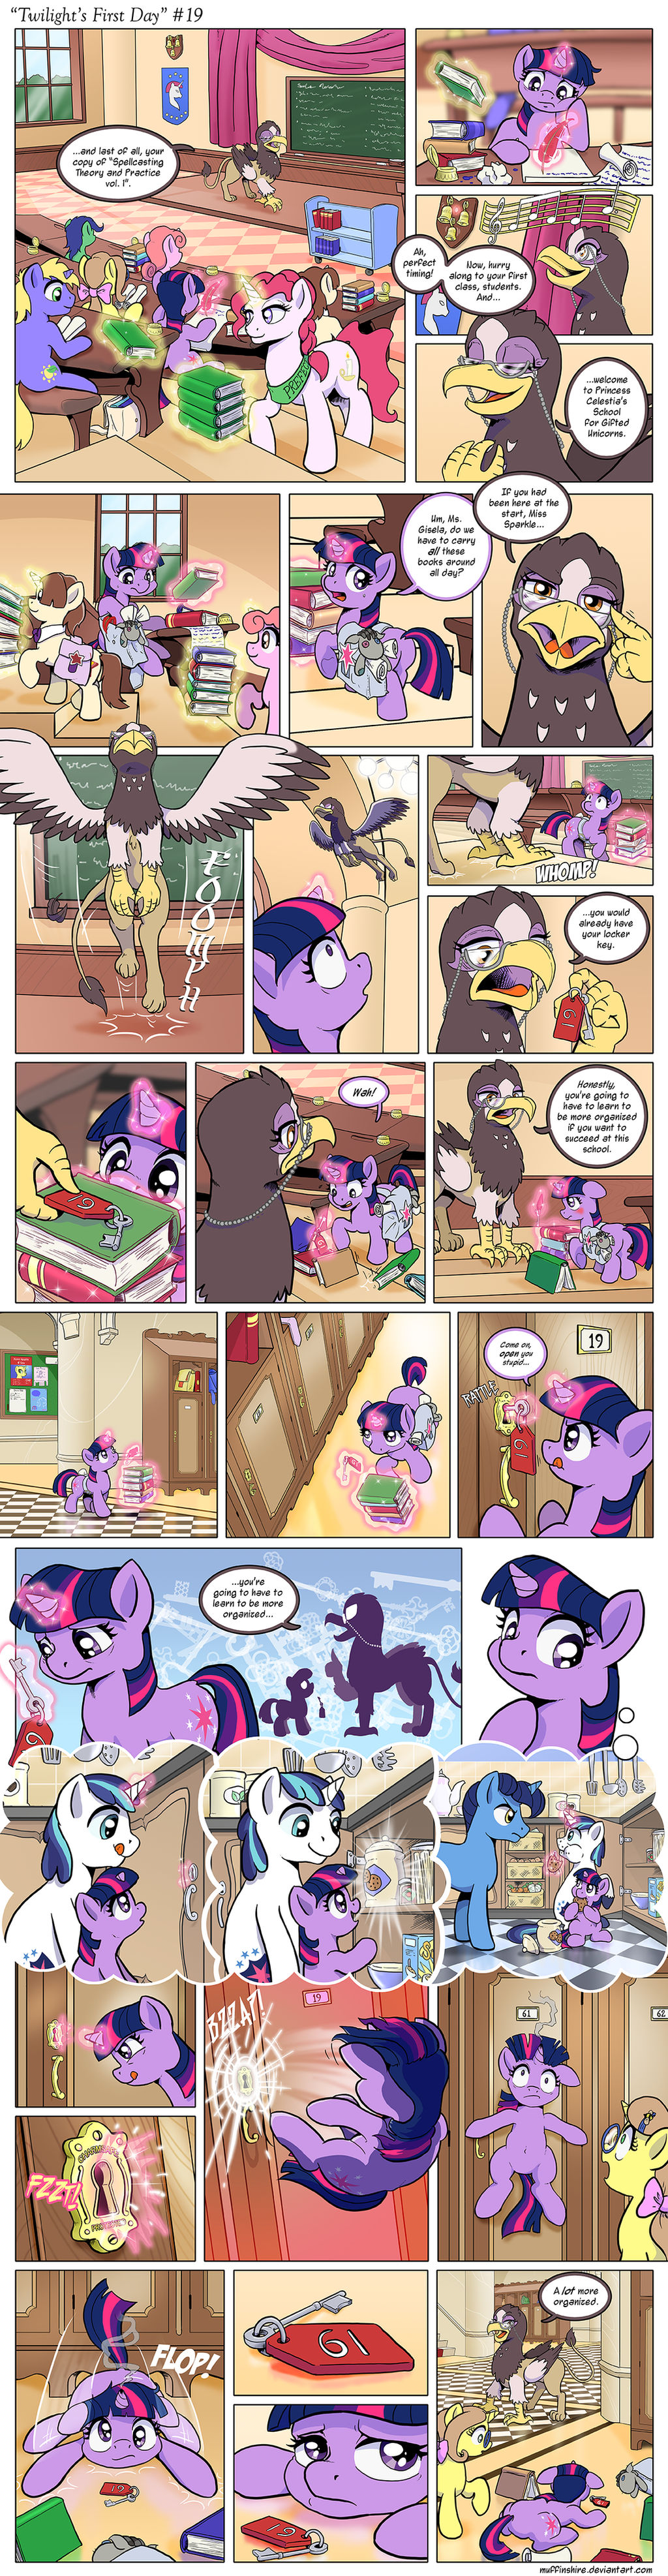 Comic - Twilight's First Day #19